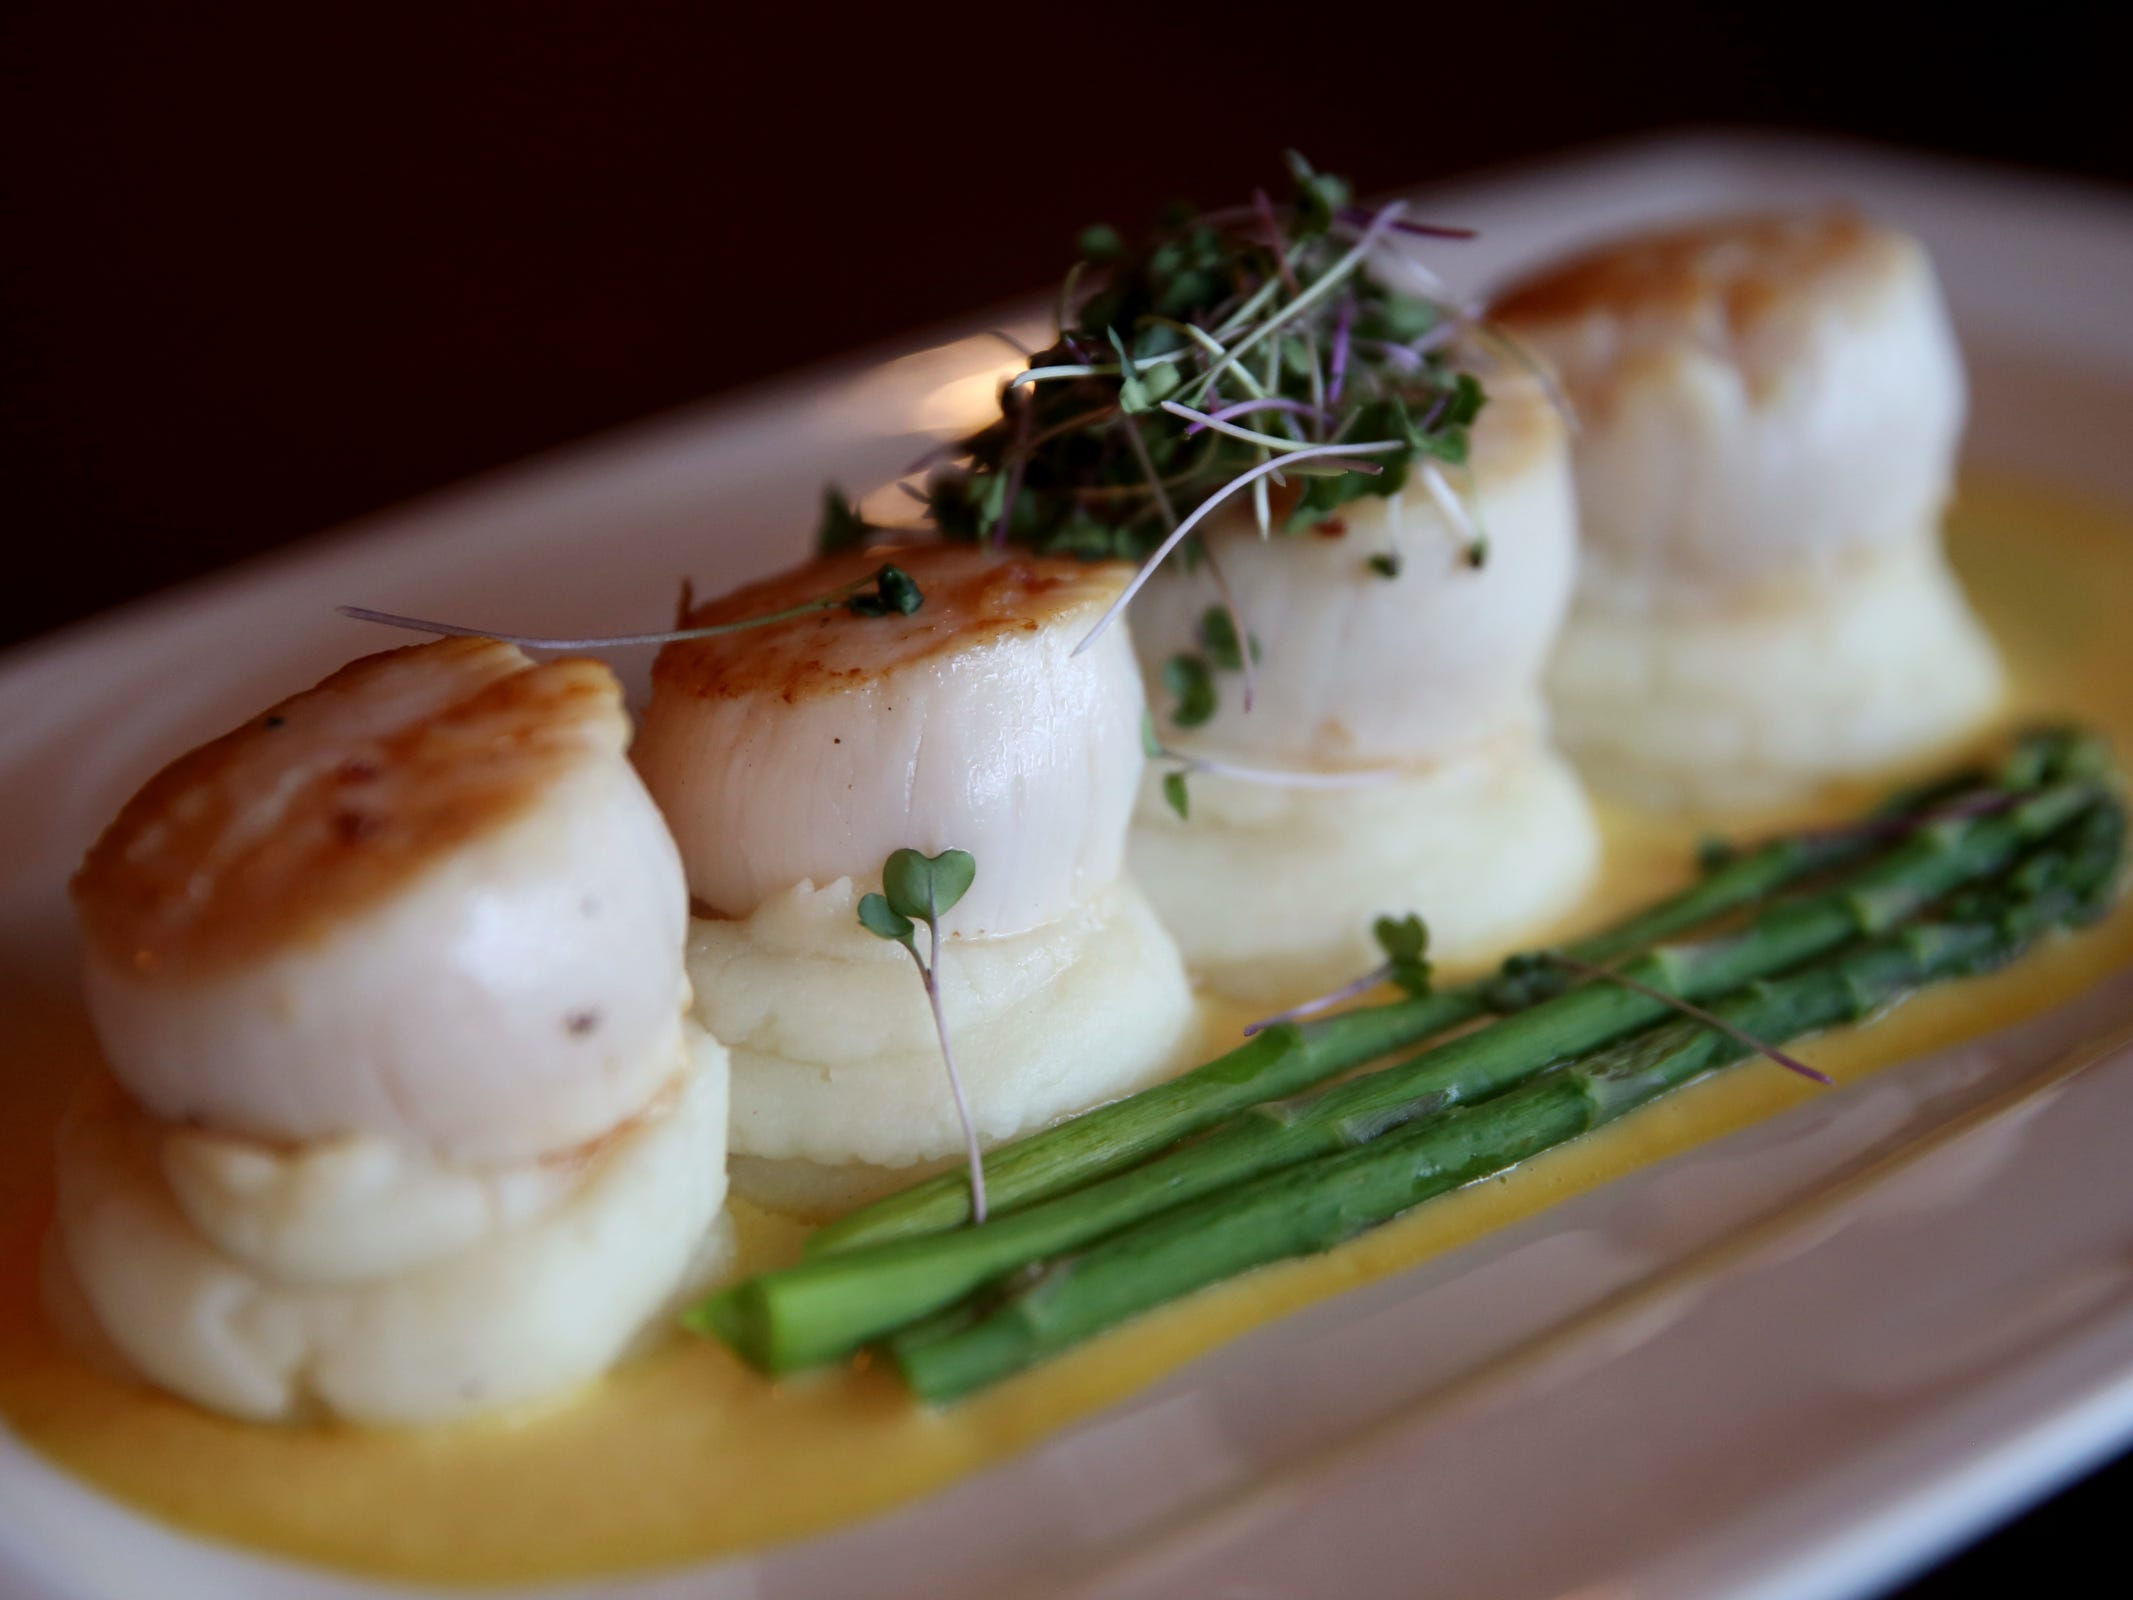 Seared scallops with mashed potatoes, saffron pineapple sauce and vegetables at Bentley's Grill in Salem on Friday, Feb. 15, 2019.